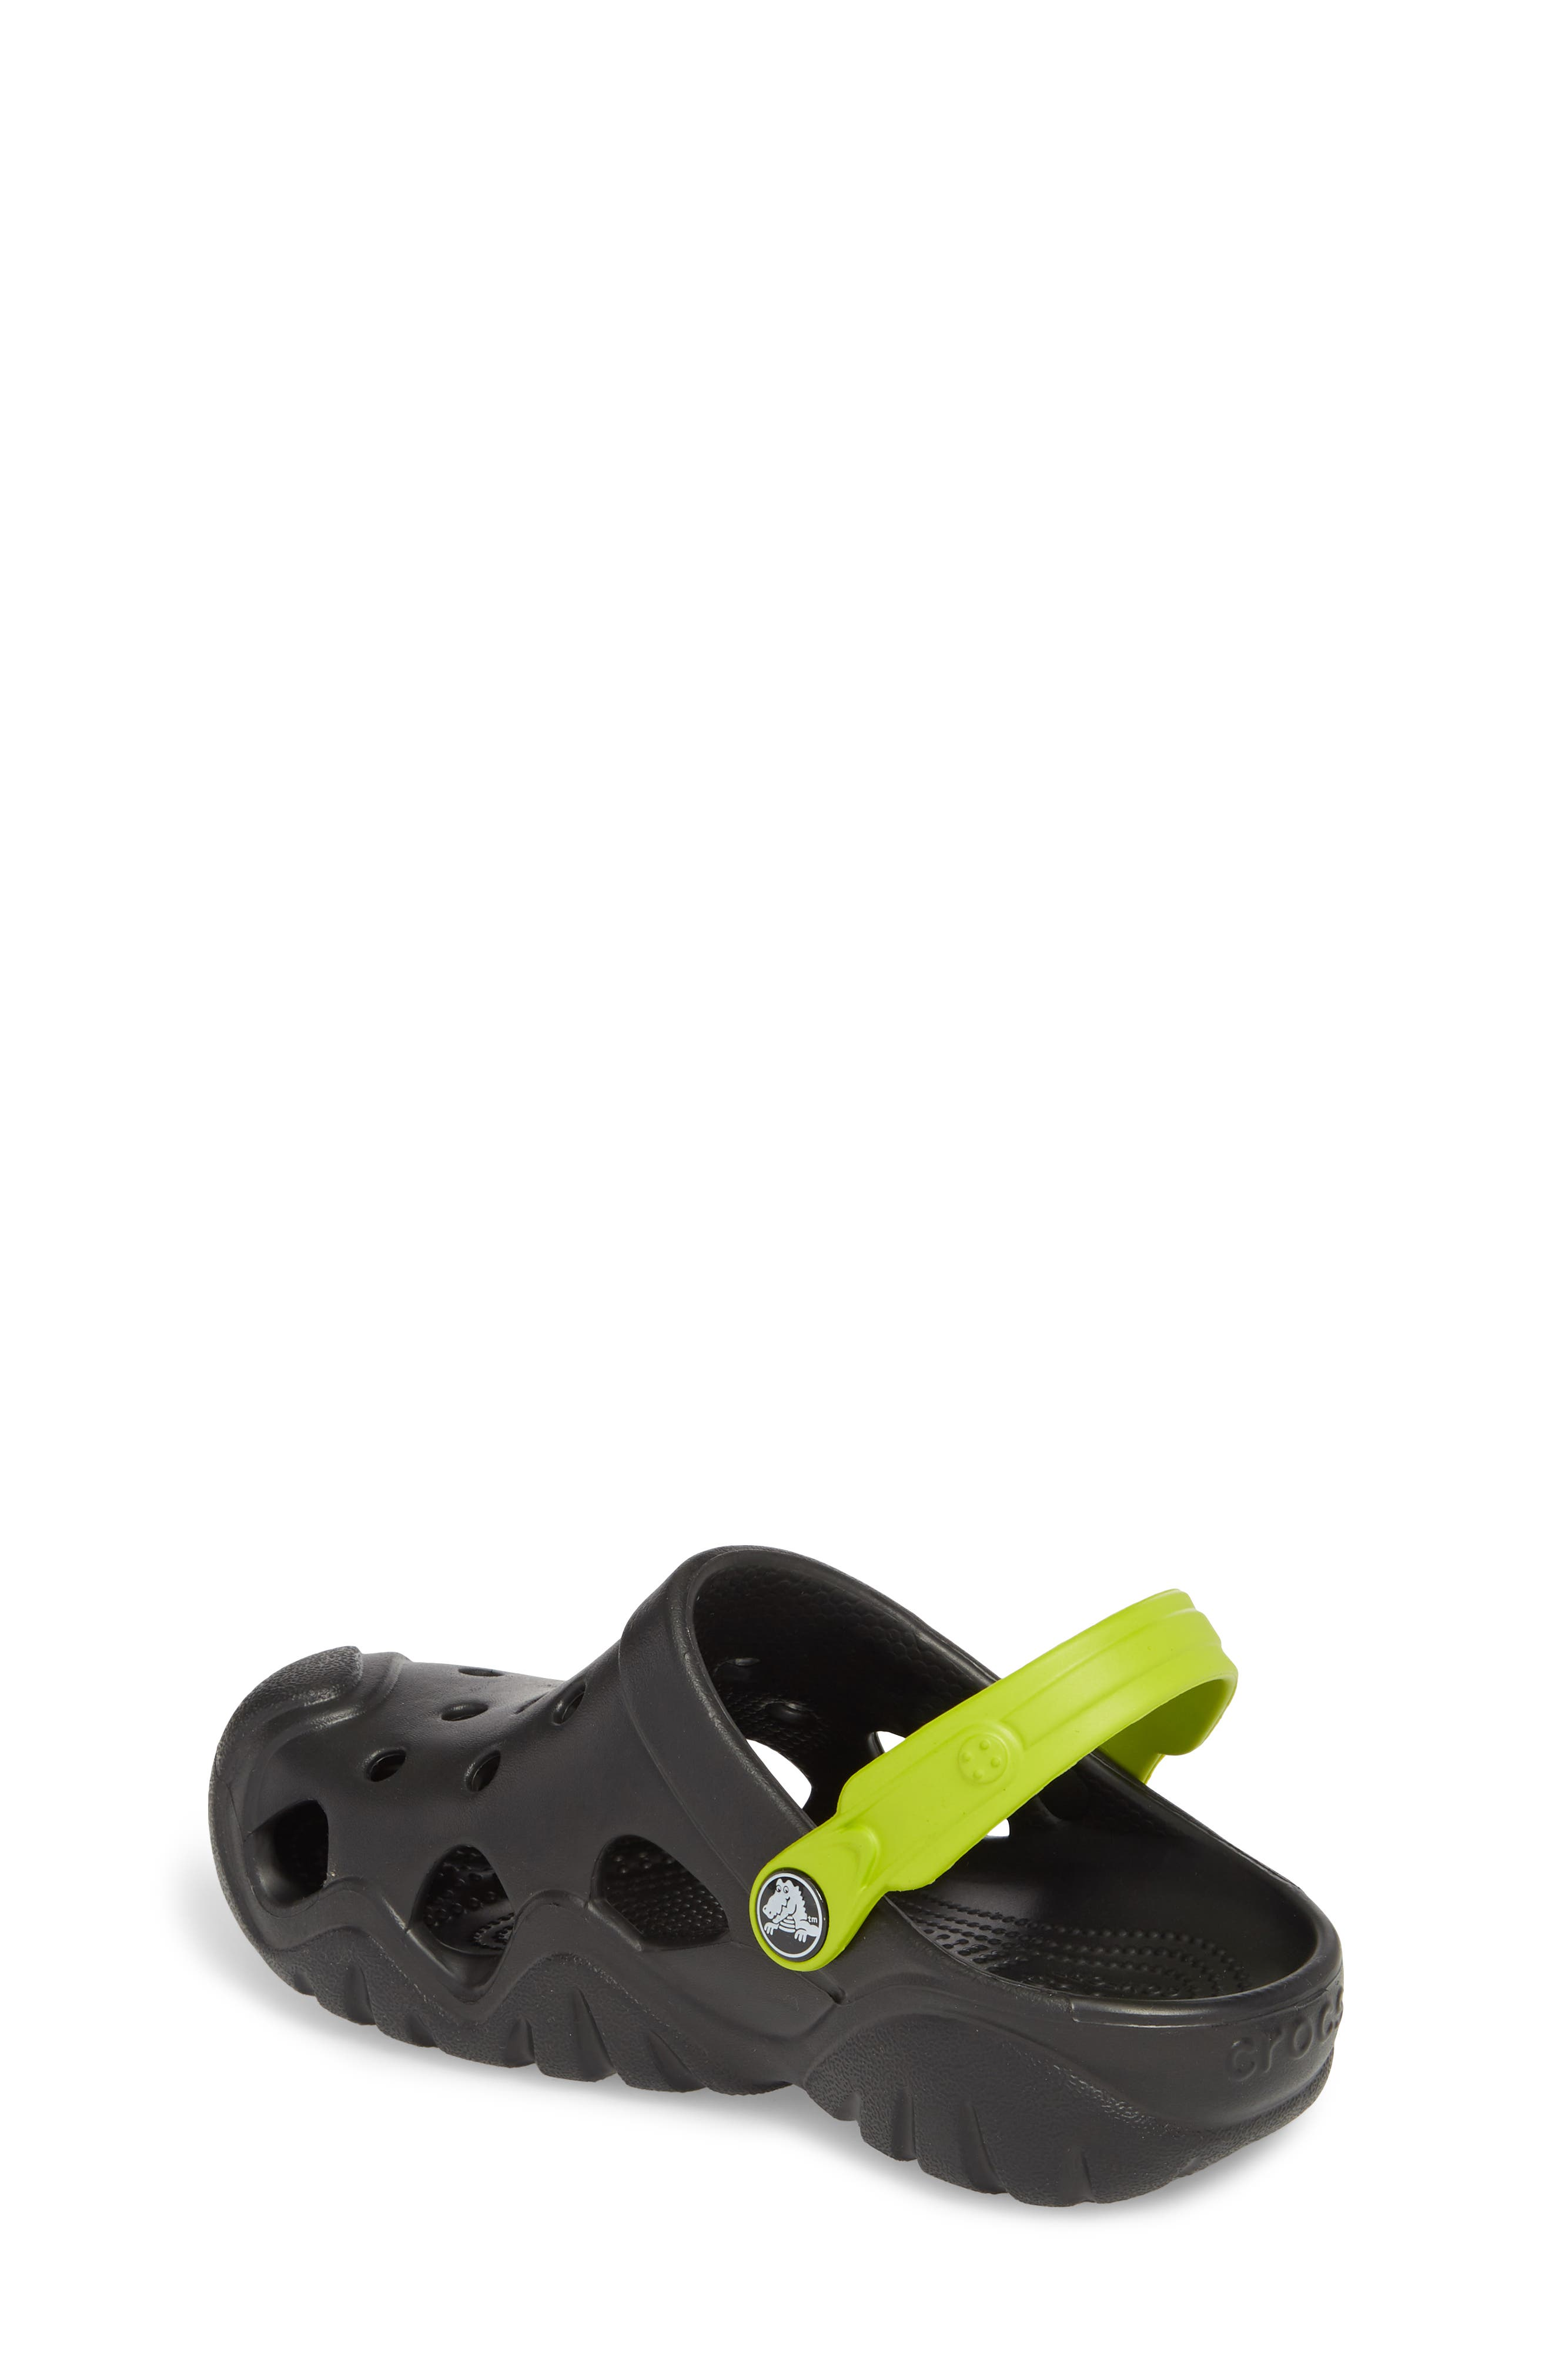 Swiftwater Clogs,                             Alternate thumbnail 2, color,                             Black